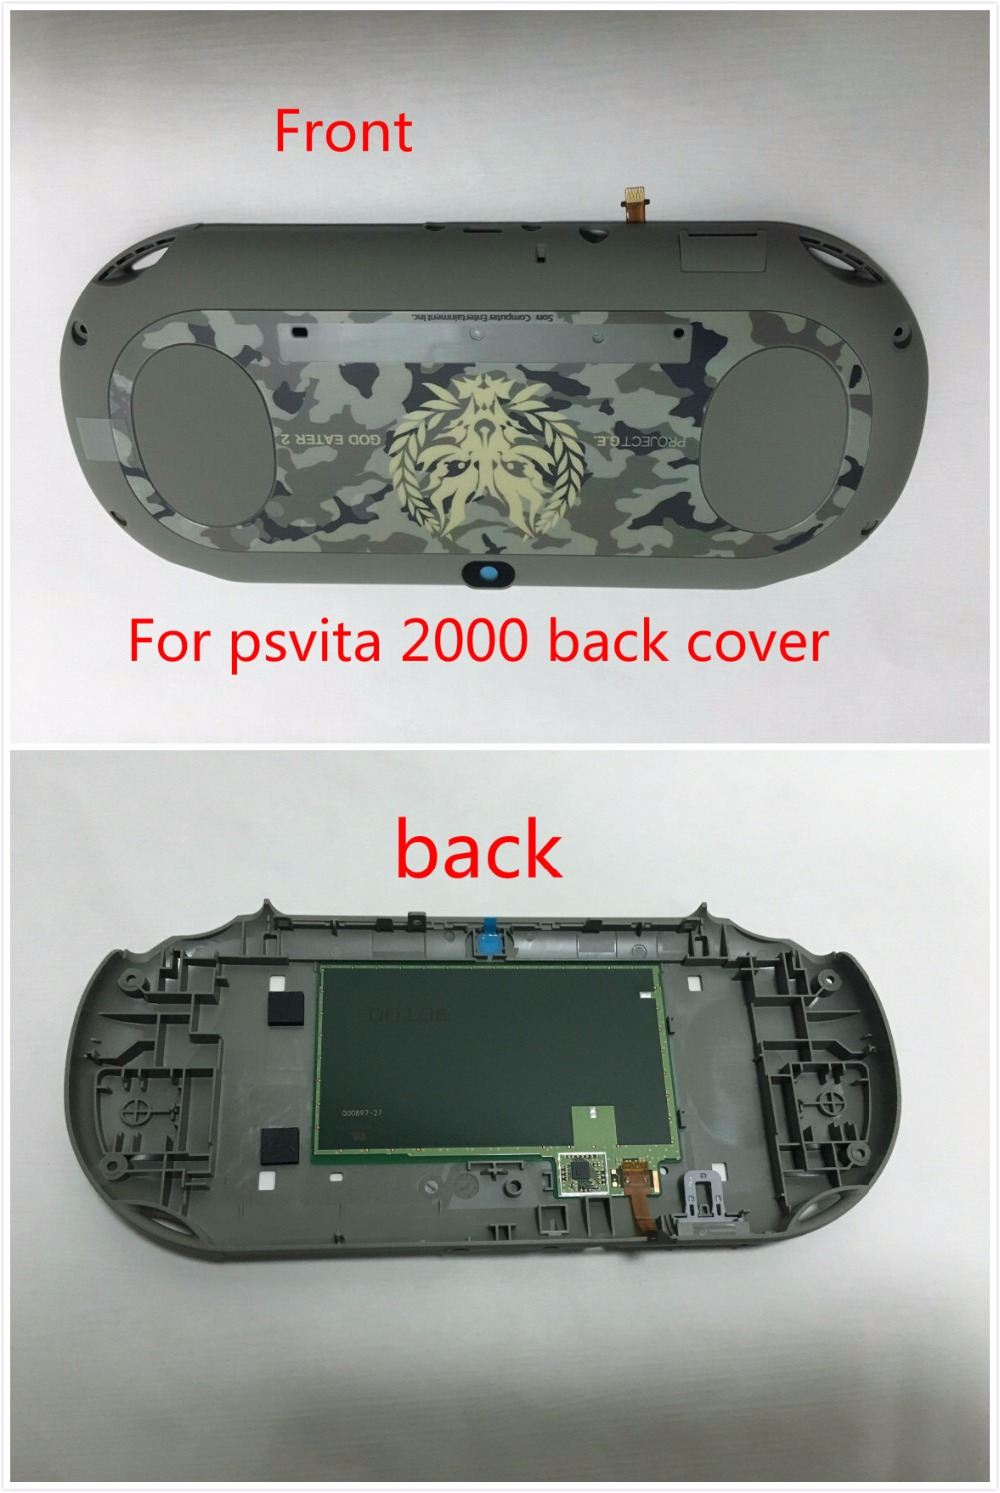 US $28 5 |Wifi Version Touch Screen Panel for PS Vita 2000 PSV2000 Psvita  2000 Back Faceplate back cover Housing Case-in Replacement Parts &